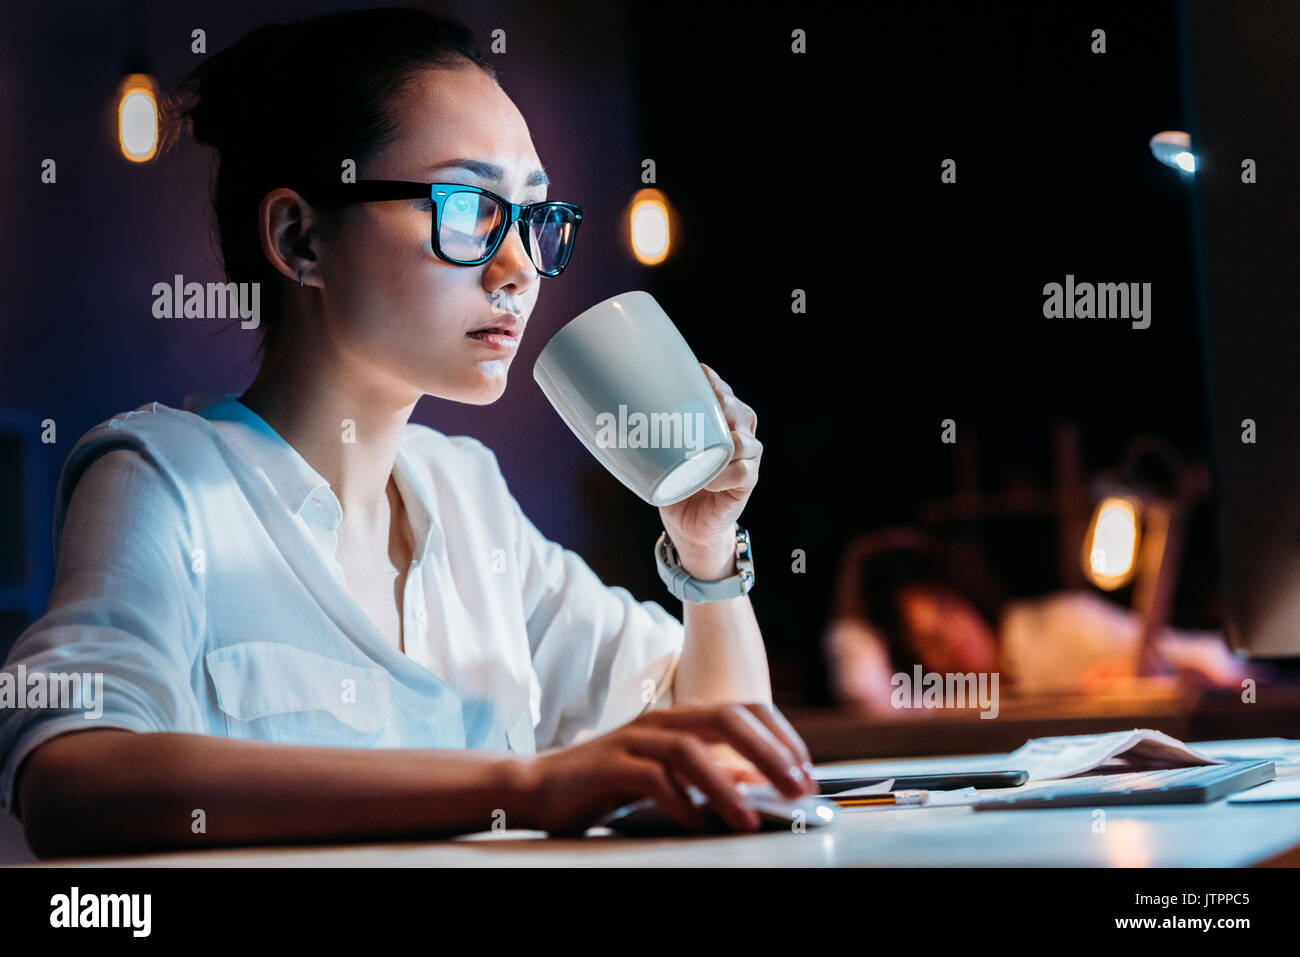 Young businesswoman in eyeglasses holding cup while working late in office  - Stock Image